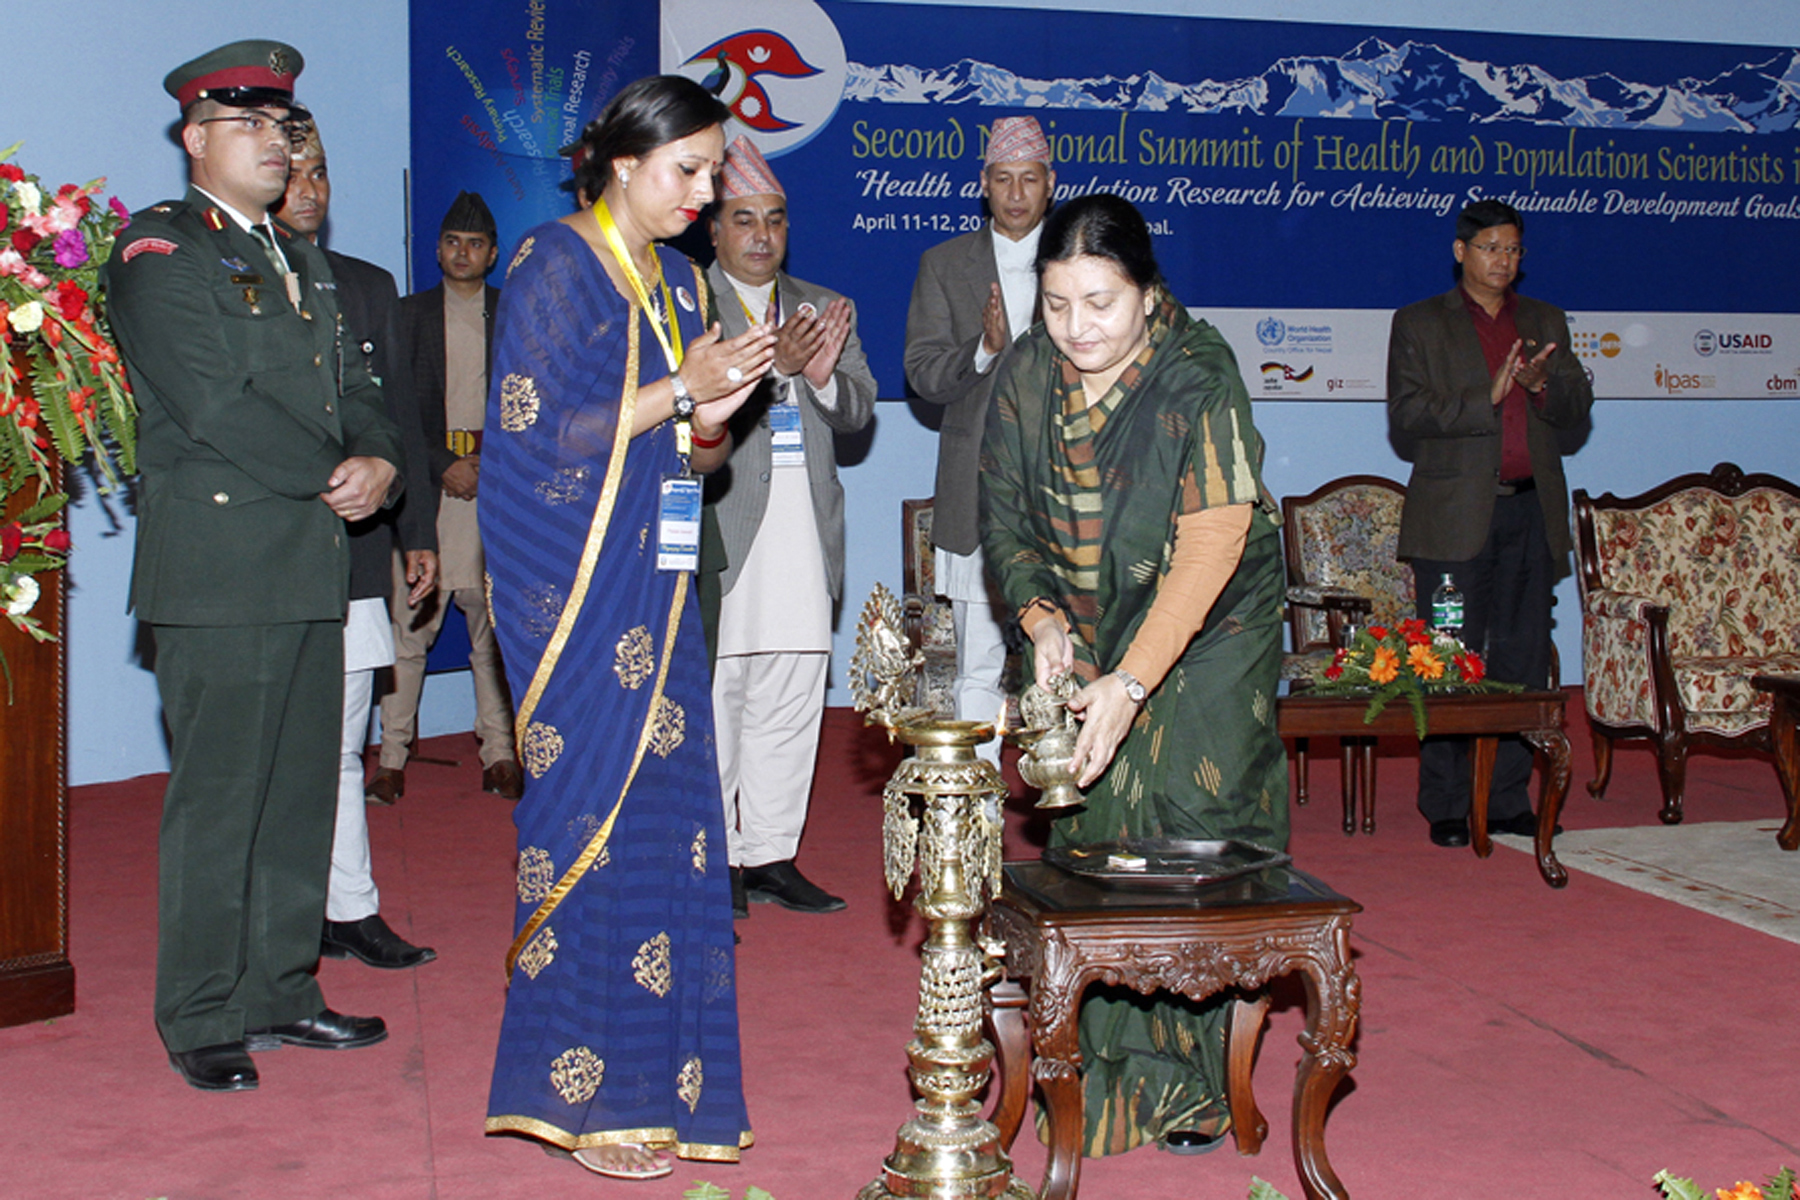 President Bidya Devi Bhandari inaugurating the Second National Summit of Health and Population Scientists in Nepal organised on the occasion of silver jubilee celebration of the Nepal Health Research Council, in Kathmandu, on Monday, April 11, 2016. Photo: RSS